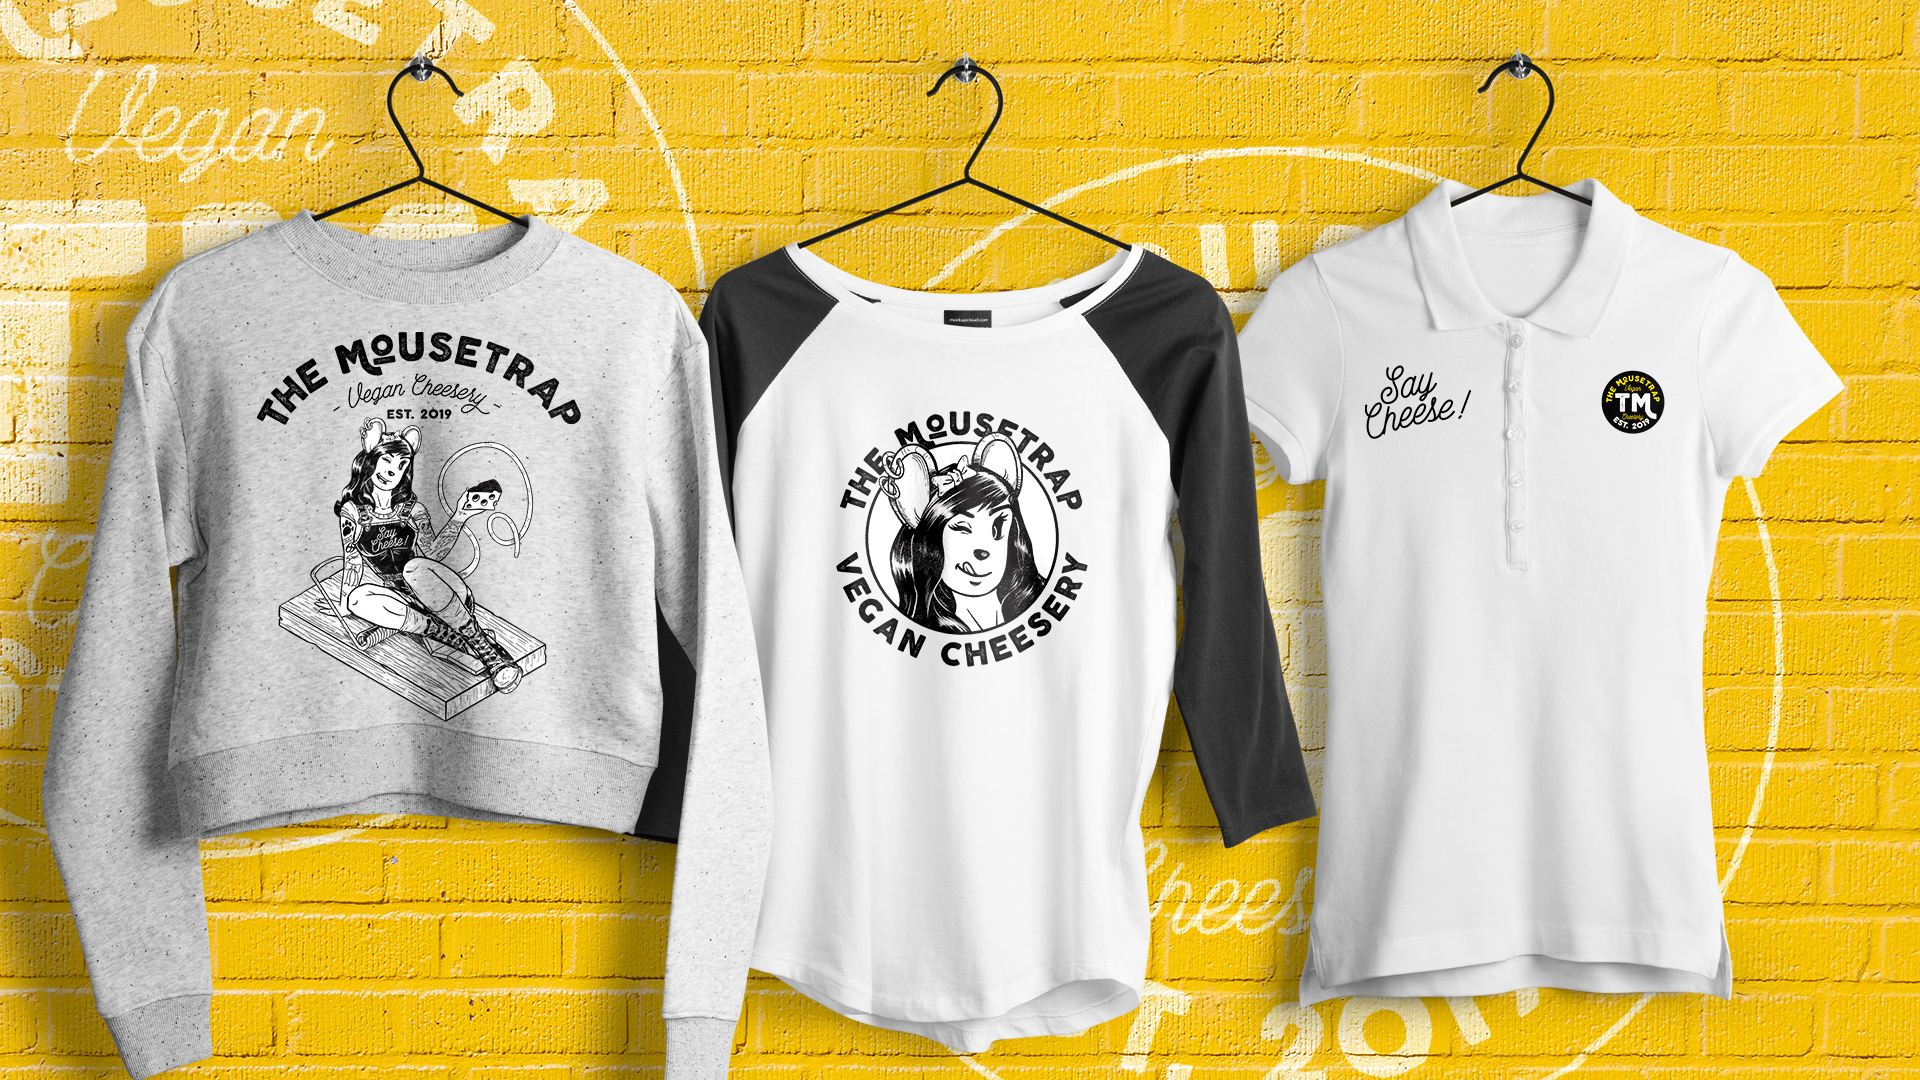 The Mousetrap pinup and logo used on different pieces of apparel